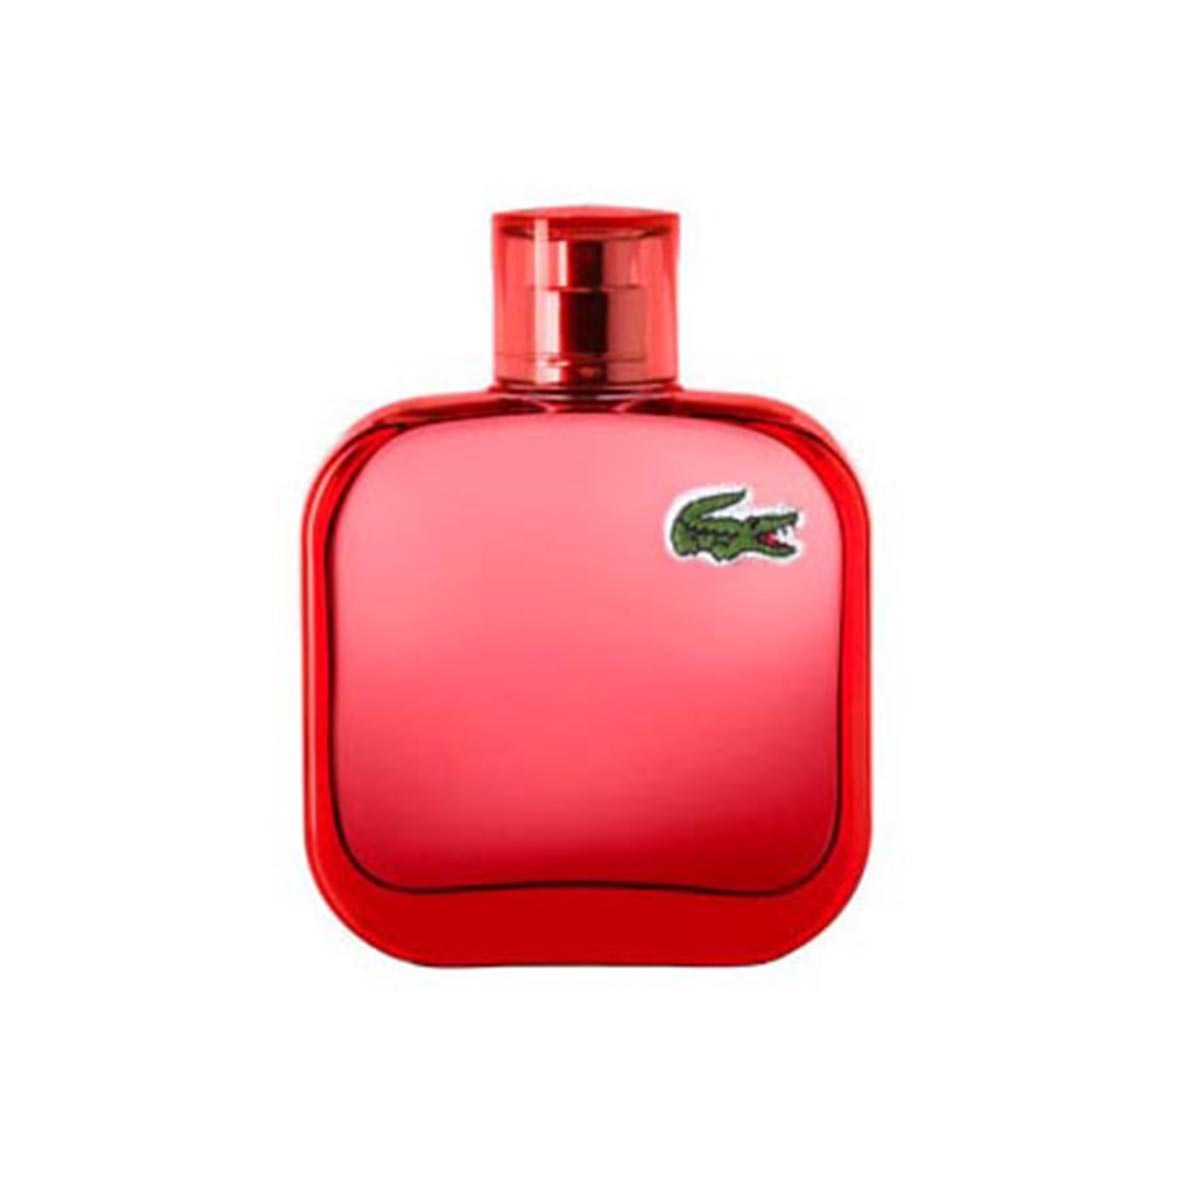 Lacoste eau lacoste l 12 12 red men eau de toilette 100ml vaporizador